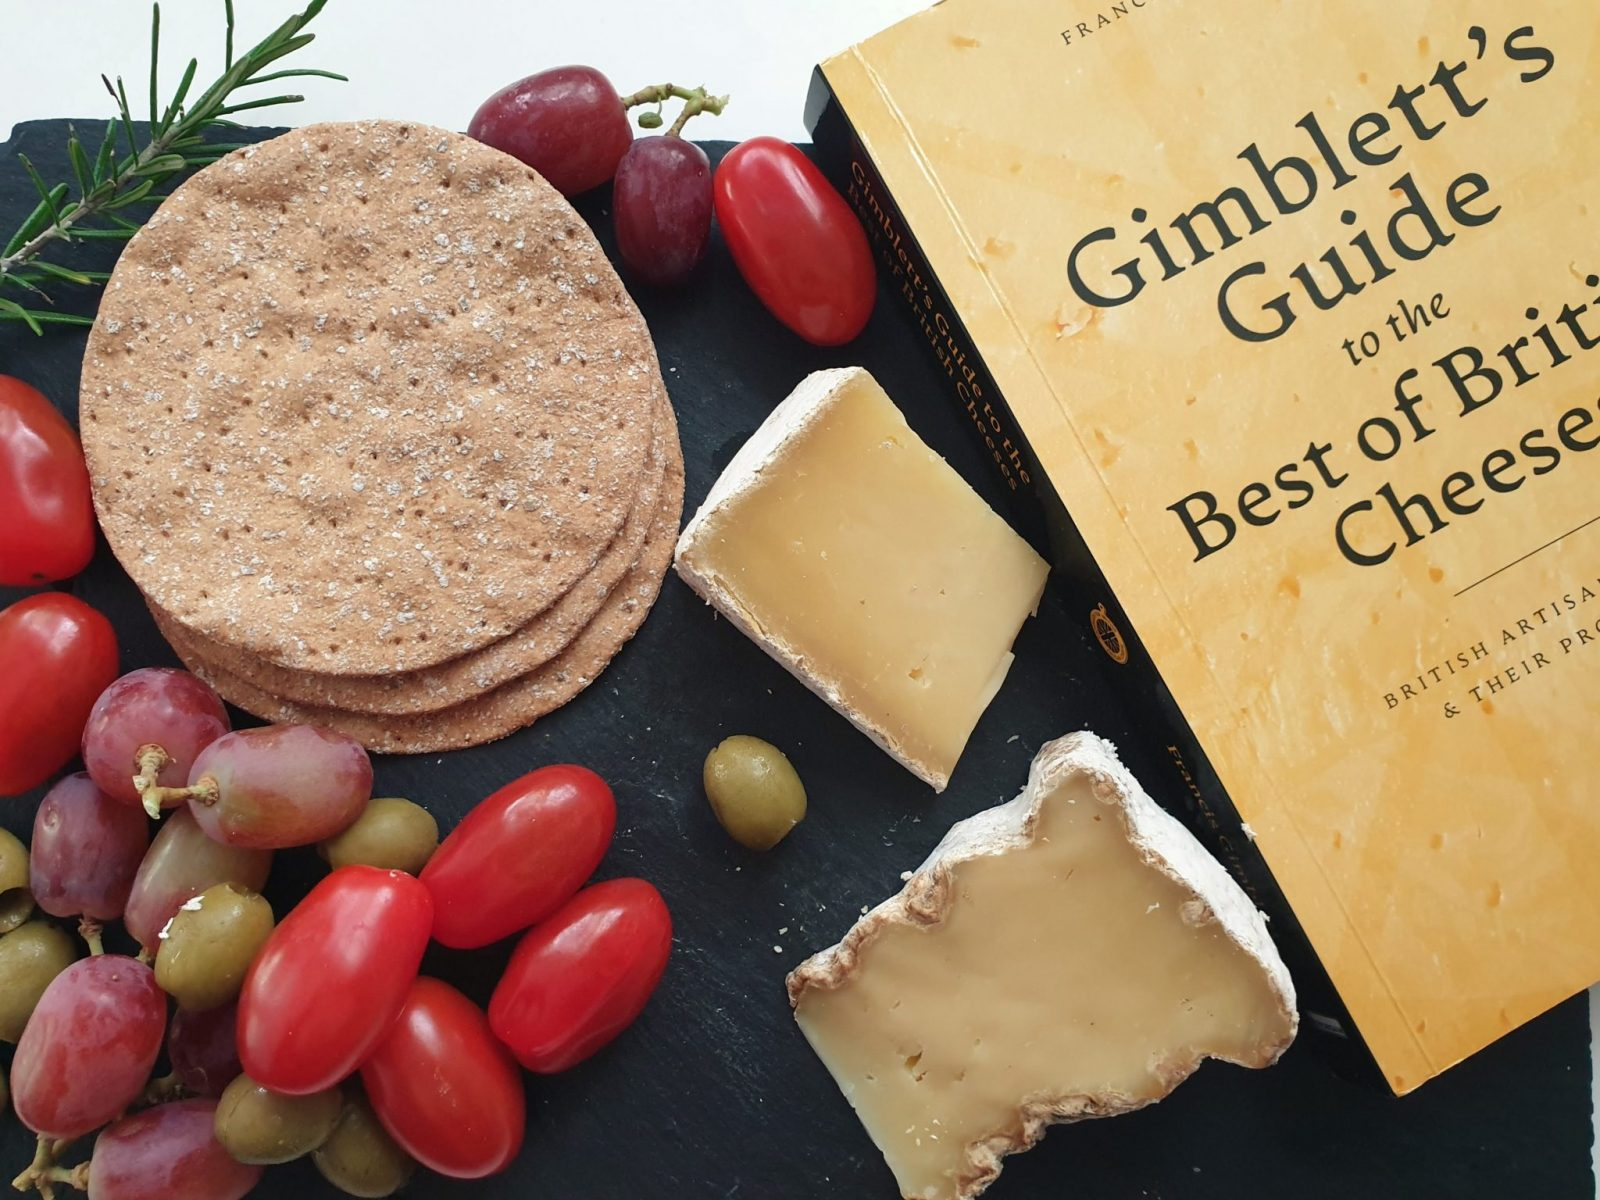 Gimblett's Guide to the Best of British Cheeses